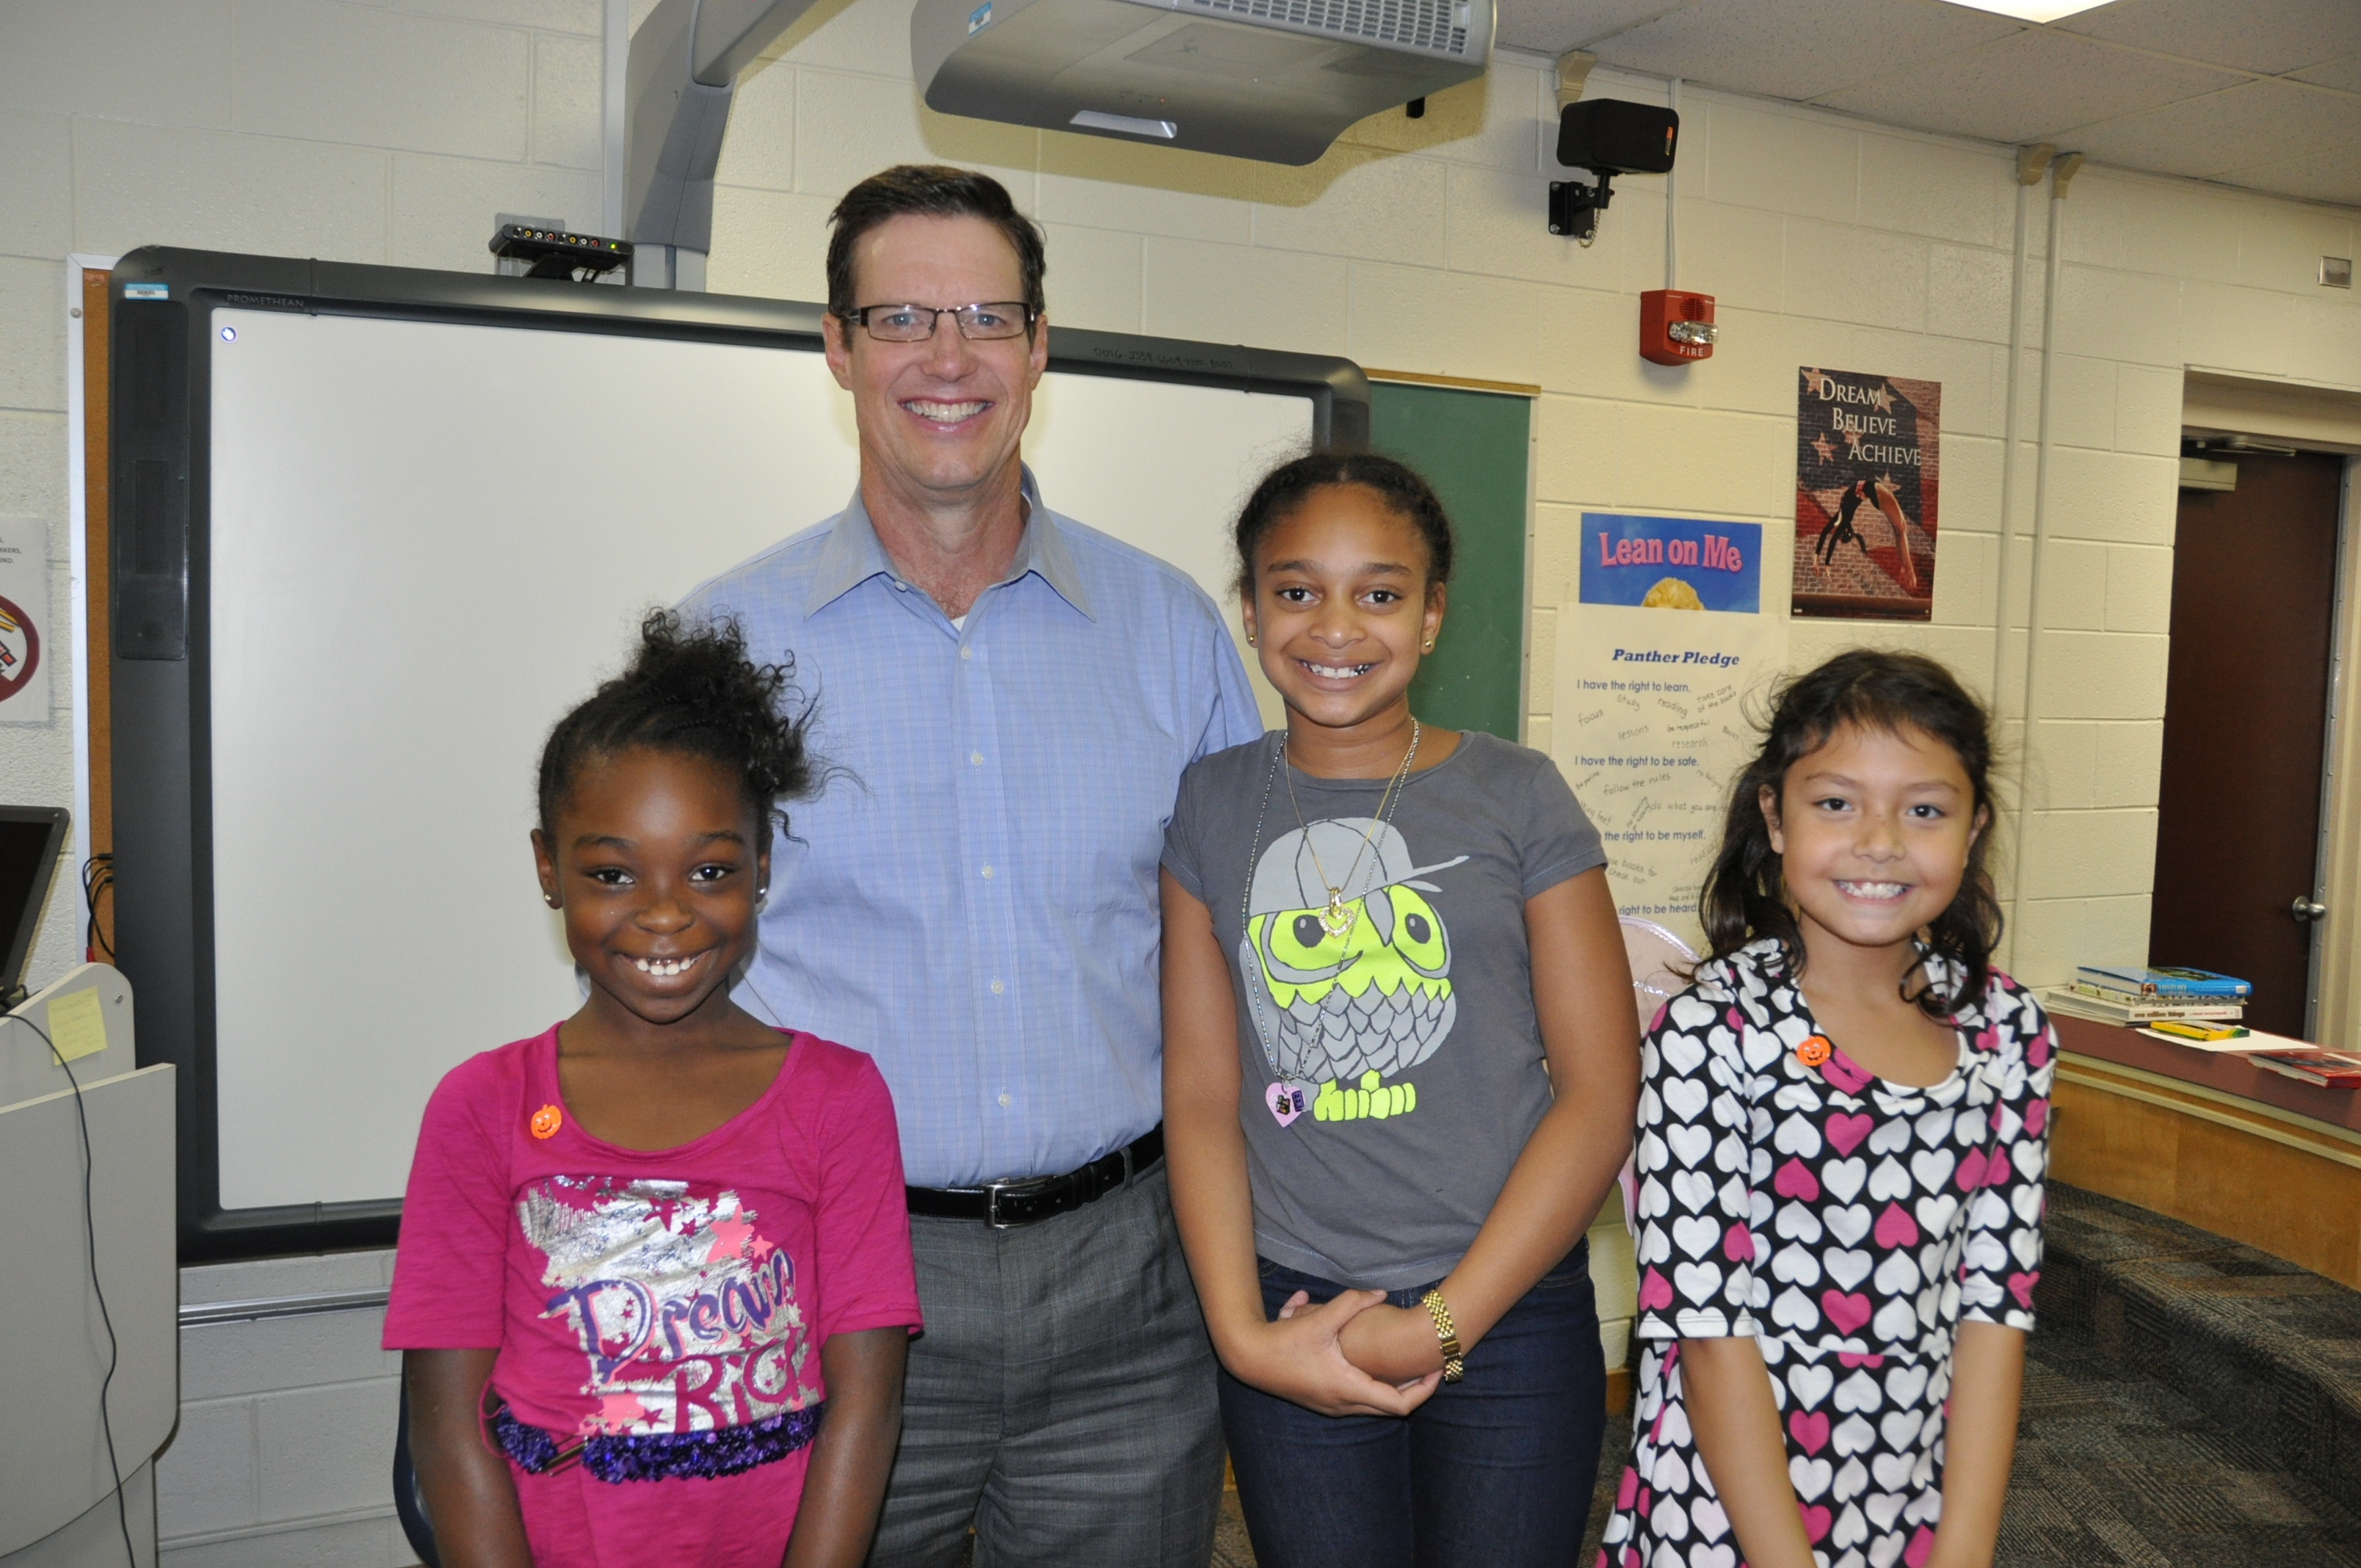 Jeff Lawson, meteorologist from WVEC News Channel 13, talked to Parkway Elementary School's fourth-grade students about the SOLs related to the weather. Shown here from left to right are Nakiyia Cason, Jeff Lawson, Tayla Benson and Alyssa Stevens.